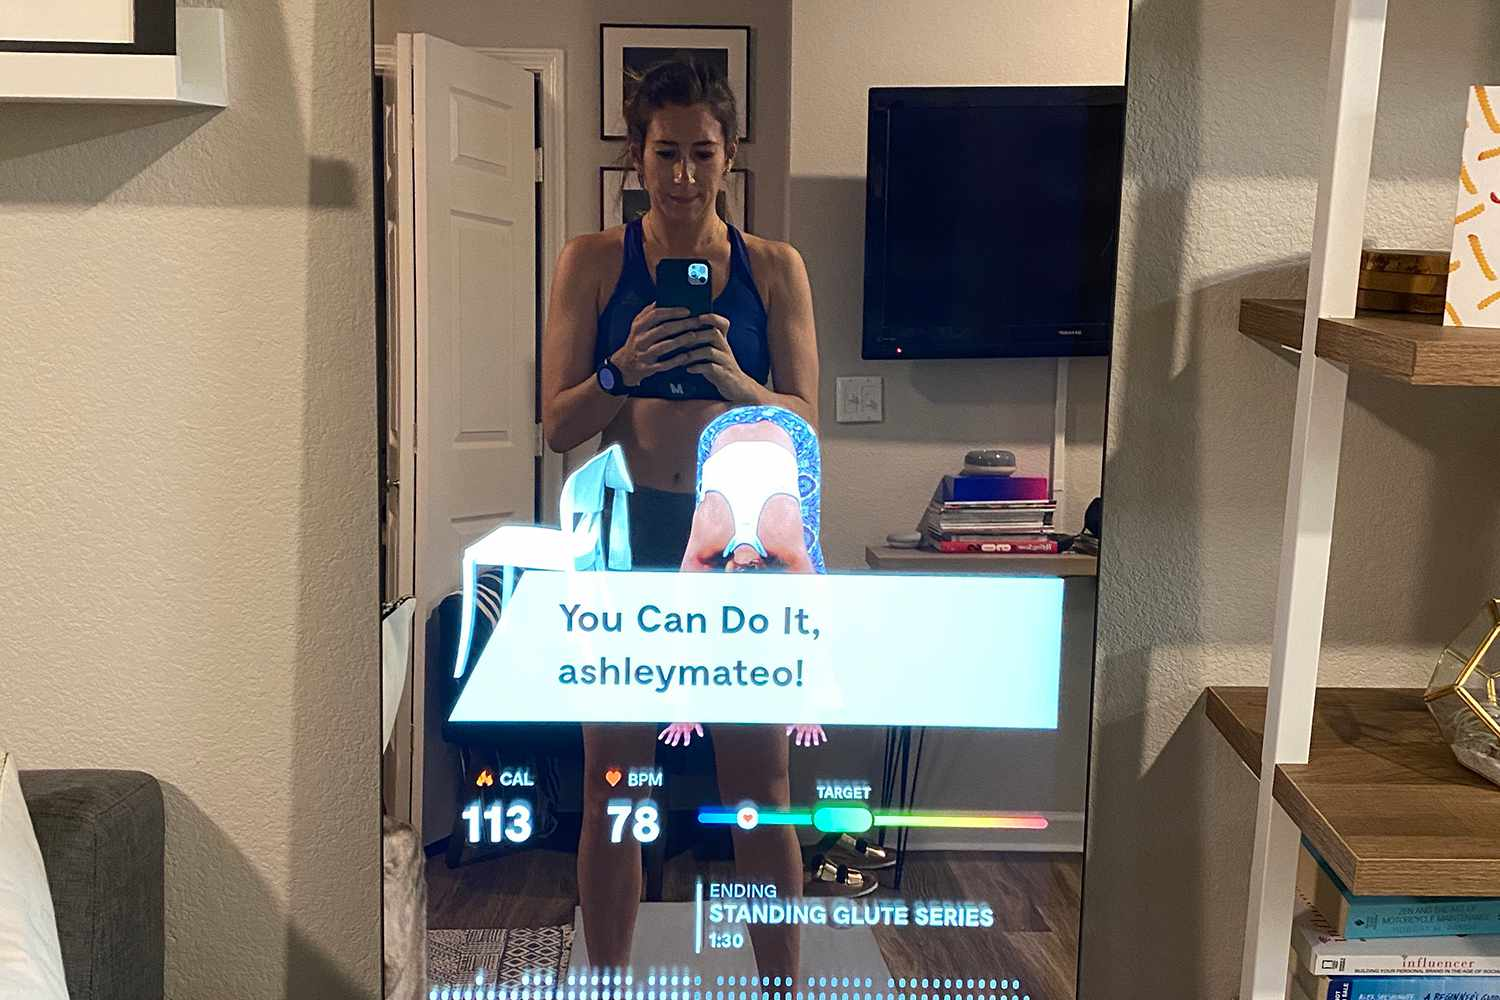 The Mirror At-Home Gym